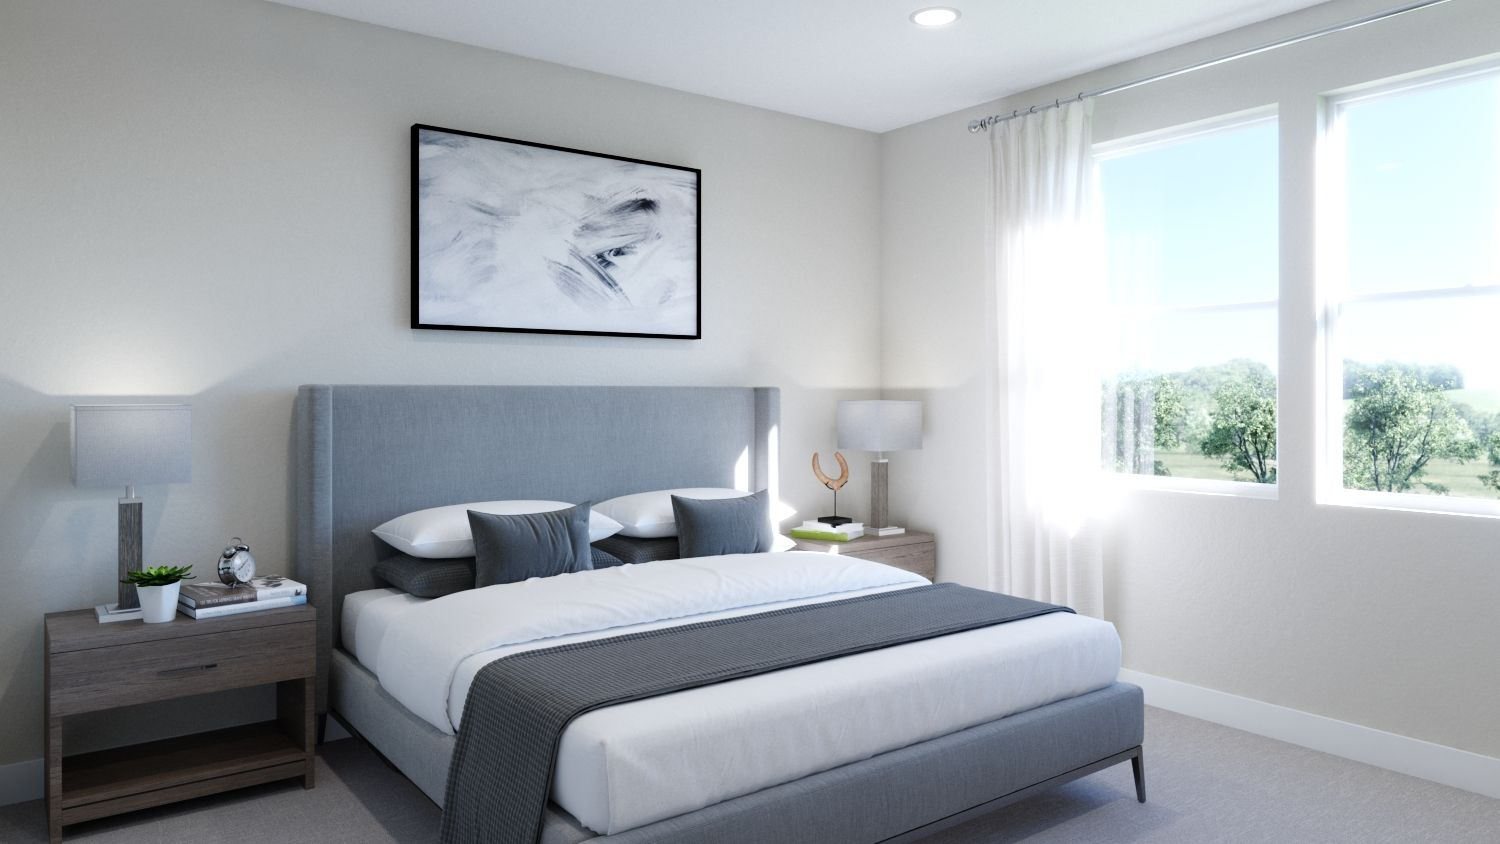 Bedroom featured in the Plan 2 By Melia in Orange County, CA